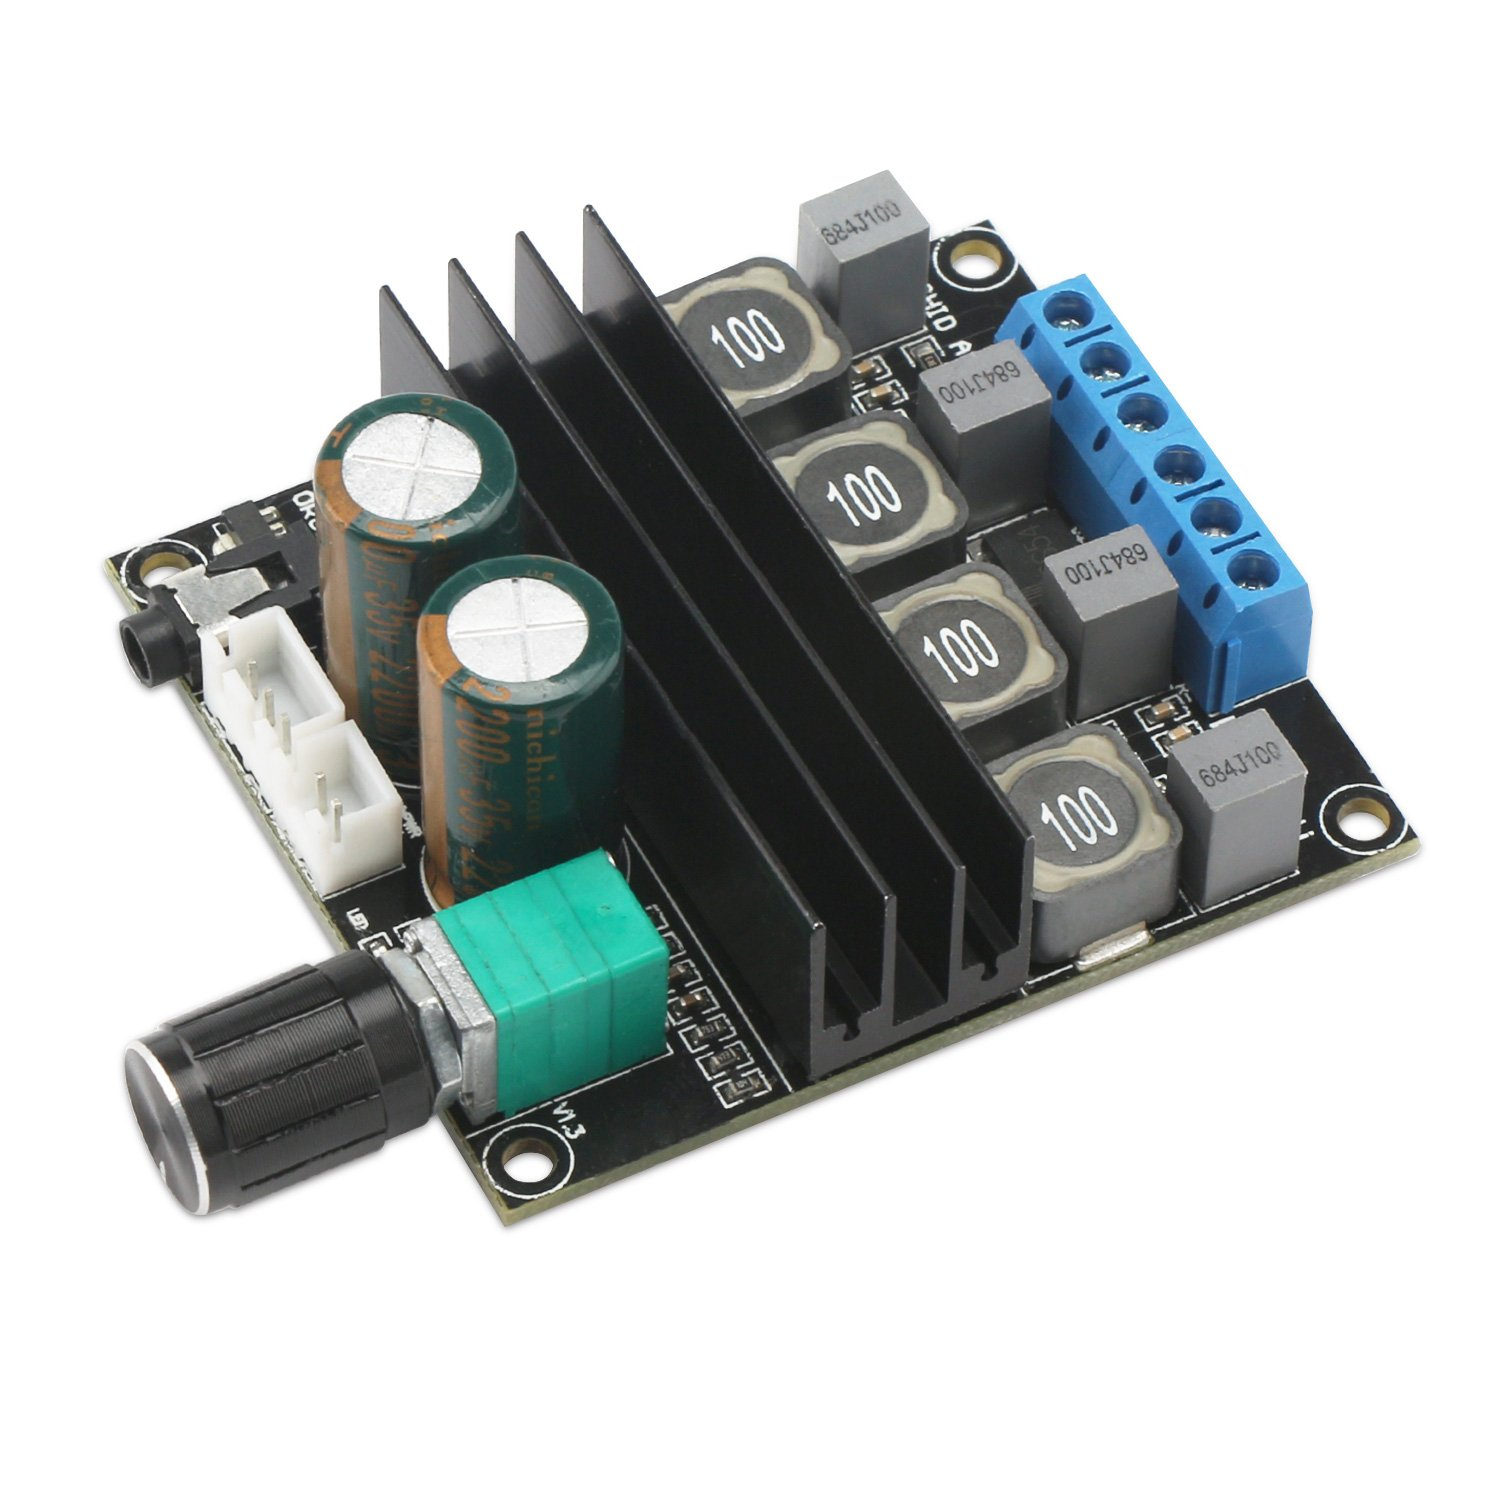 Cheap Dual Output Amplifier Find Deals On 3000w Stereo Power Circuit Get Quotations Digital Board Drok Hifi Channel Audio Dc10 25v 20